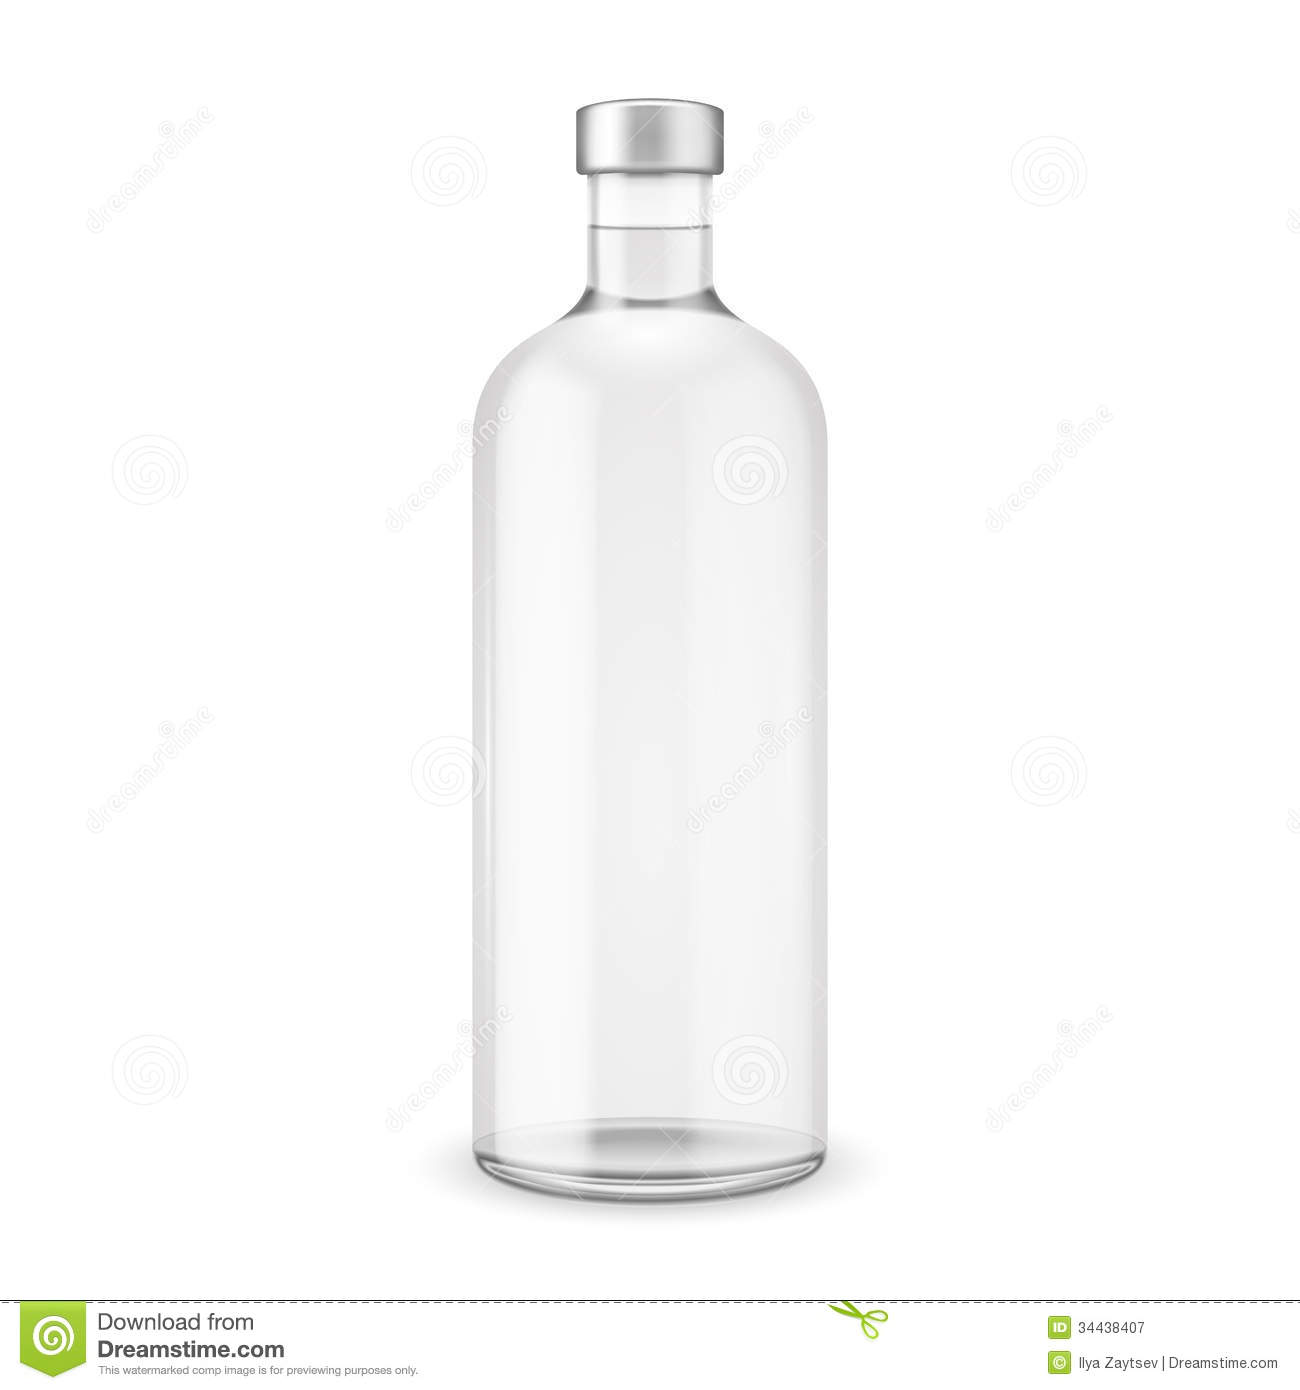 Bottle Of Vodka Royalty Free Stock Images.